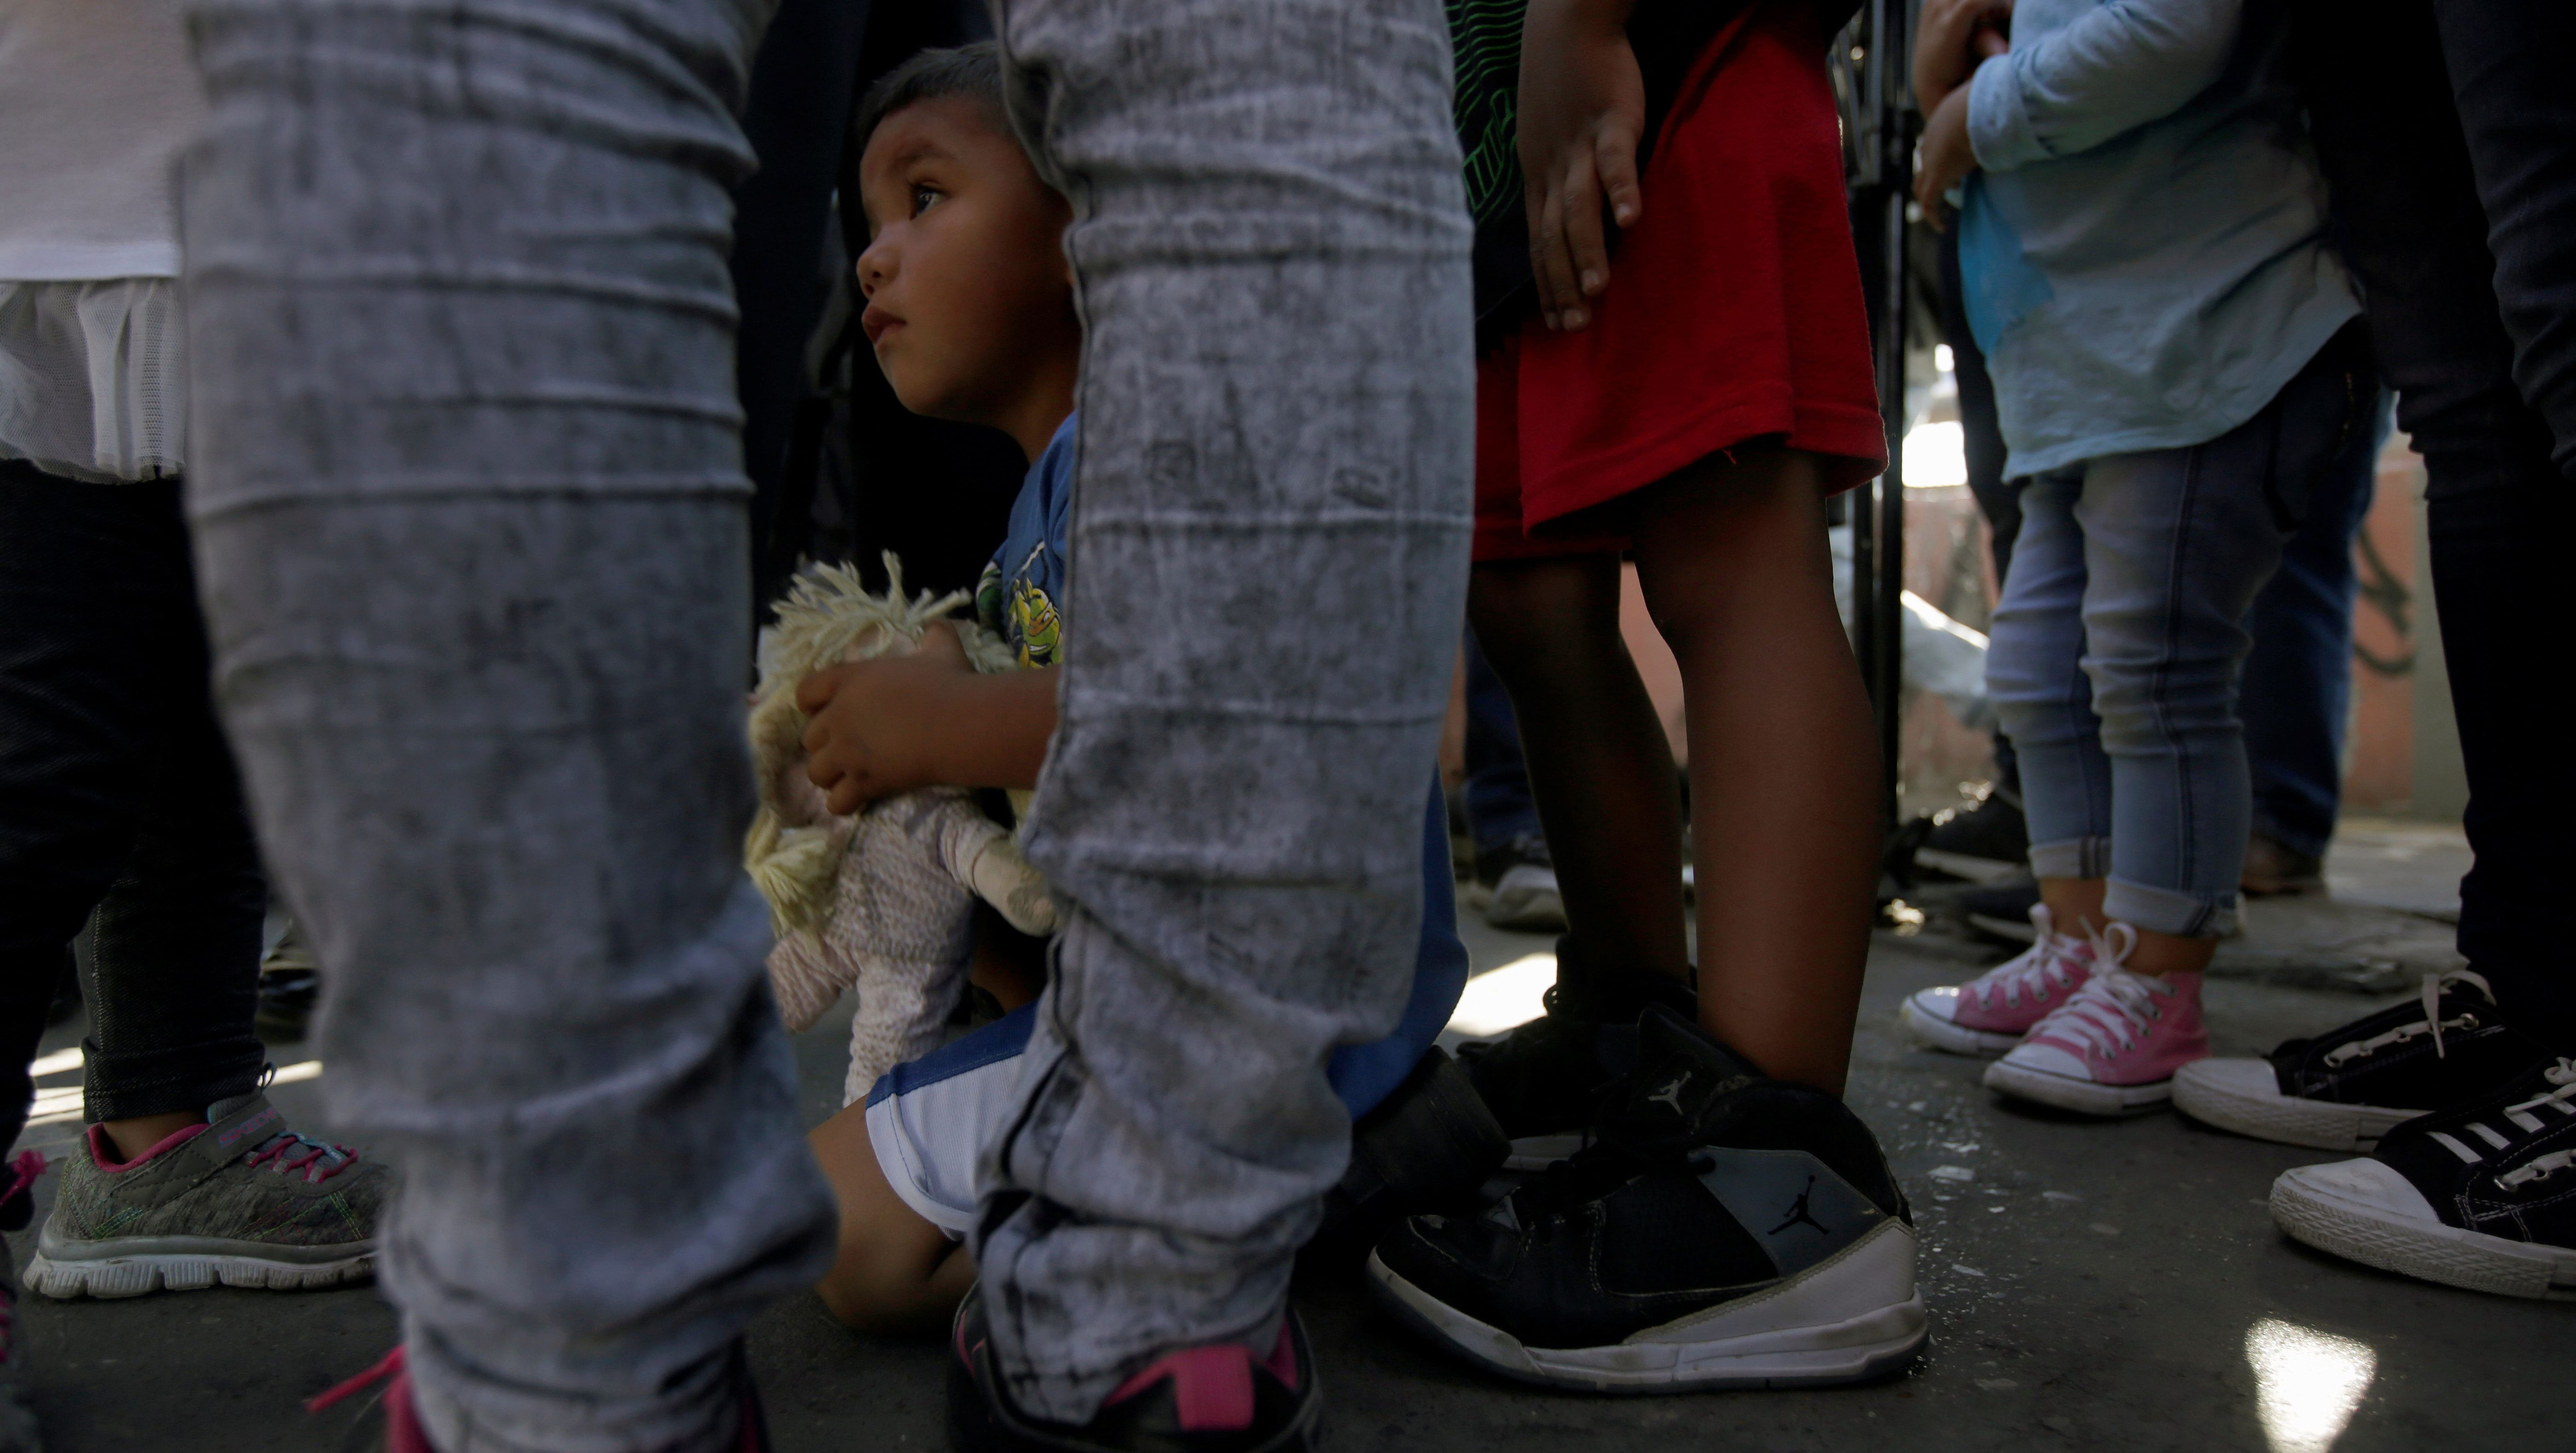 Migrant families fleeing from violence, wait to enter the United States to meet officers of the U.S. Customs and Border Protection to apply for asylum